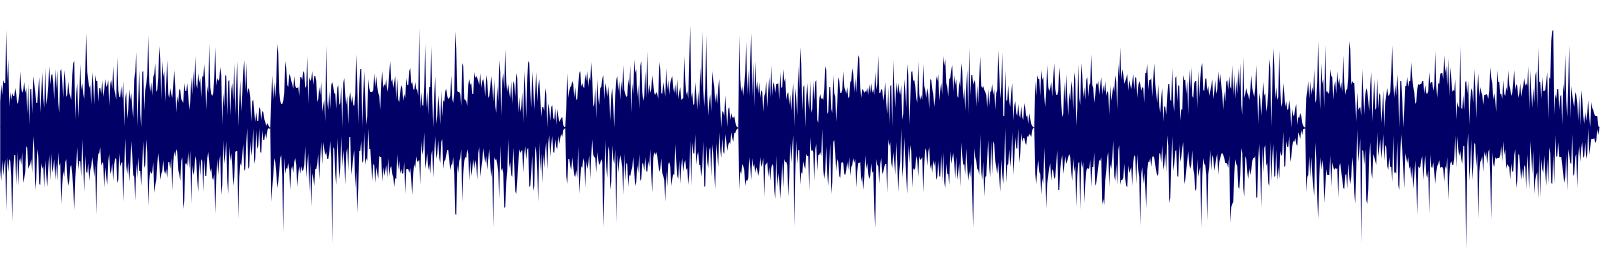 waveform of track #134010